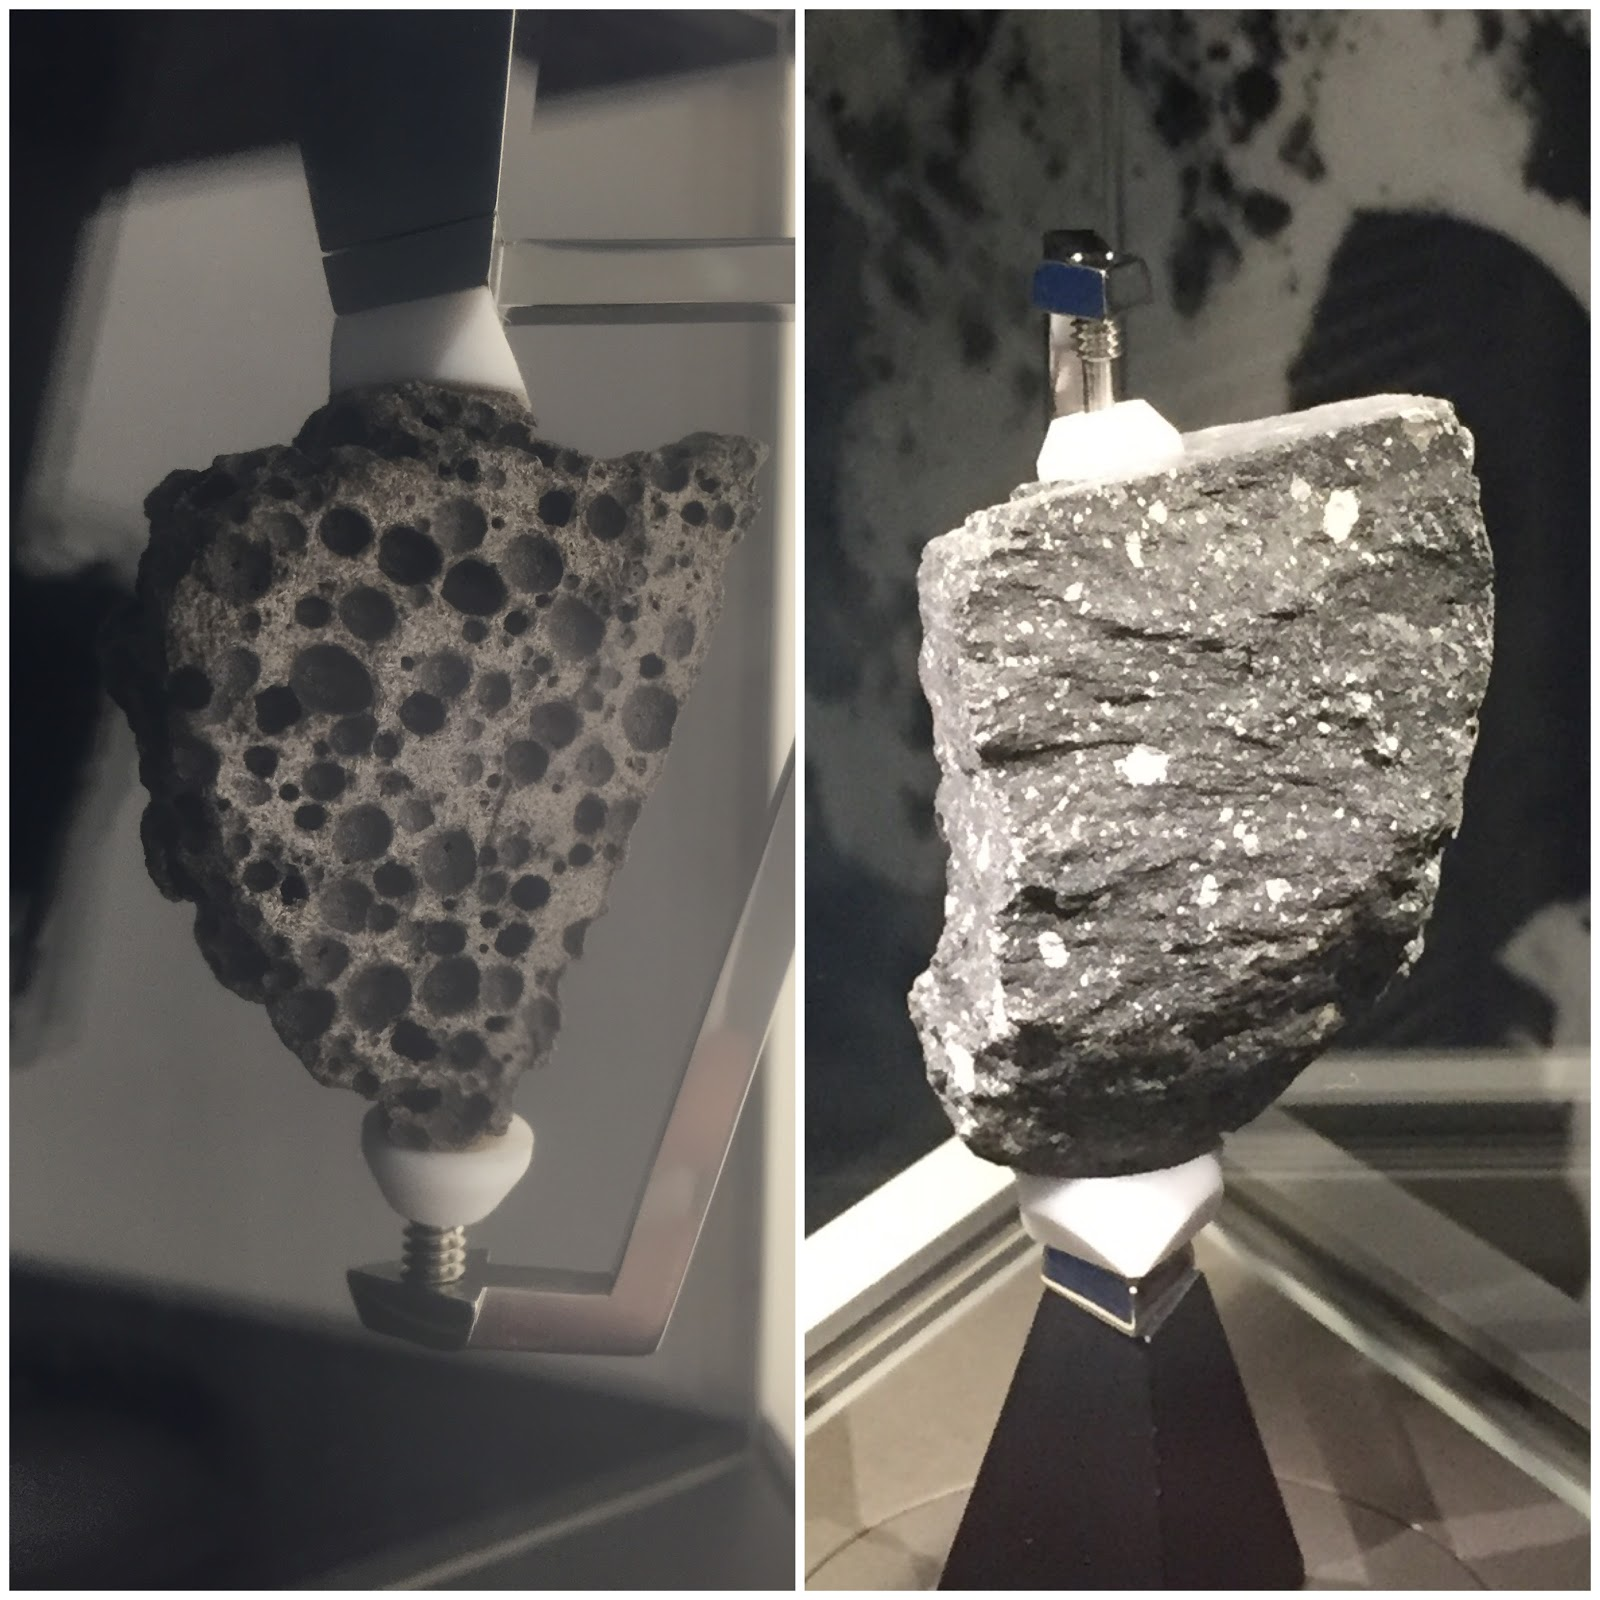 moon rock displays